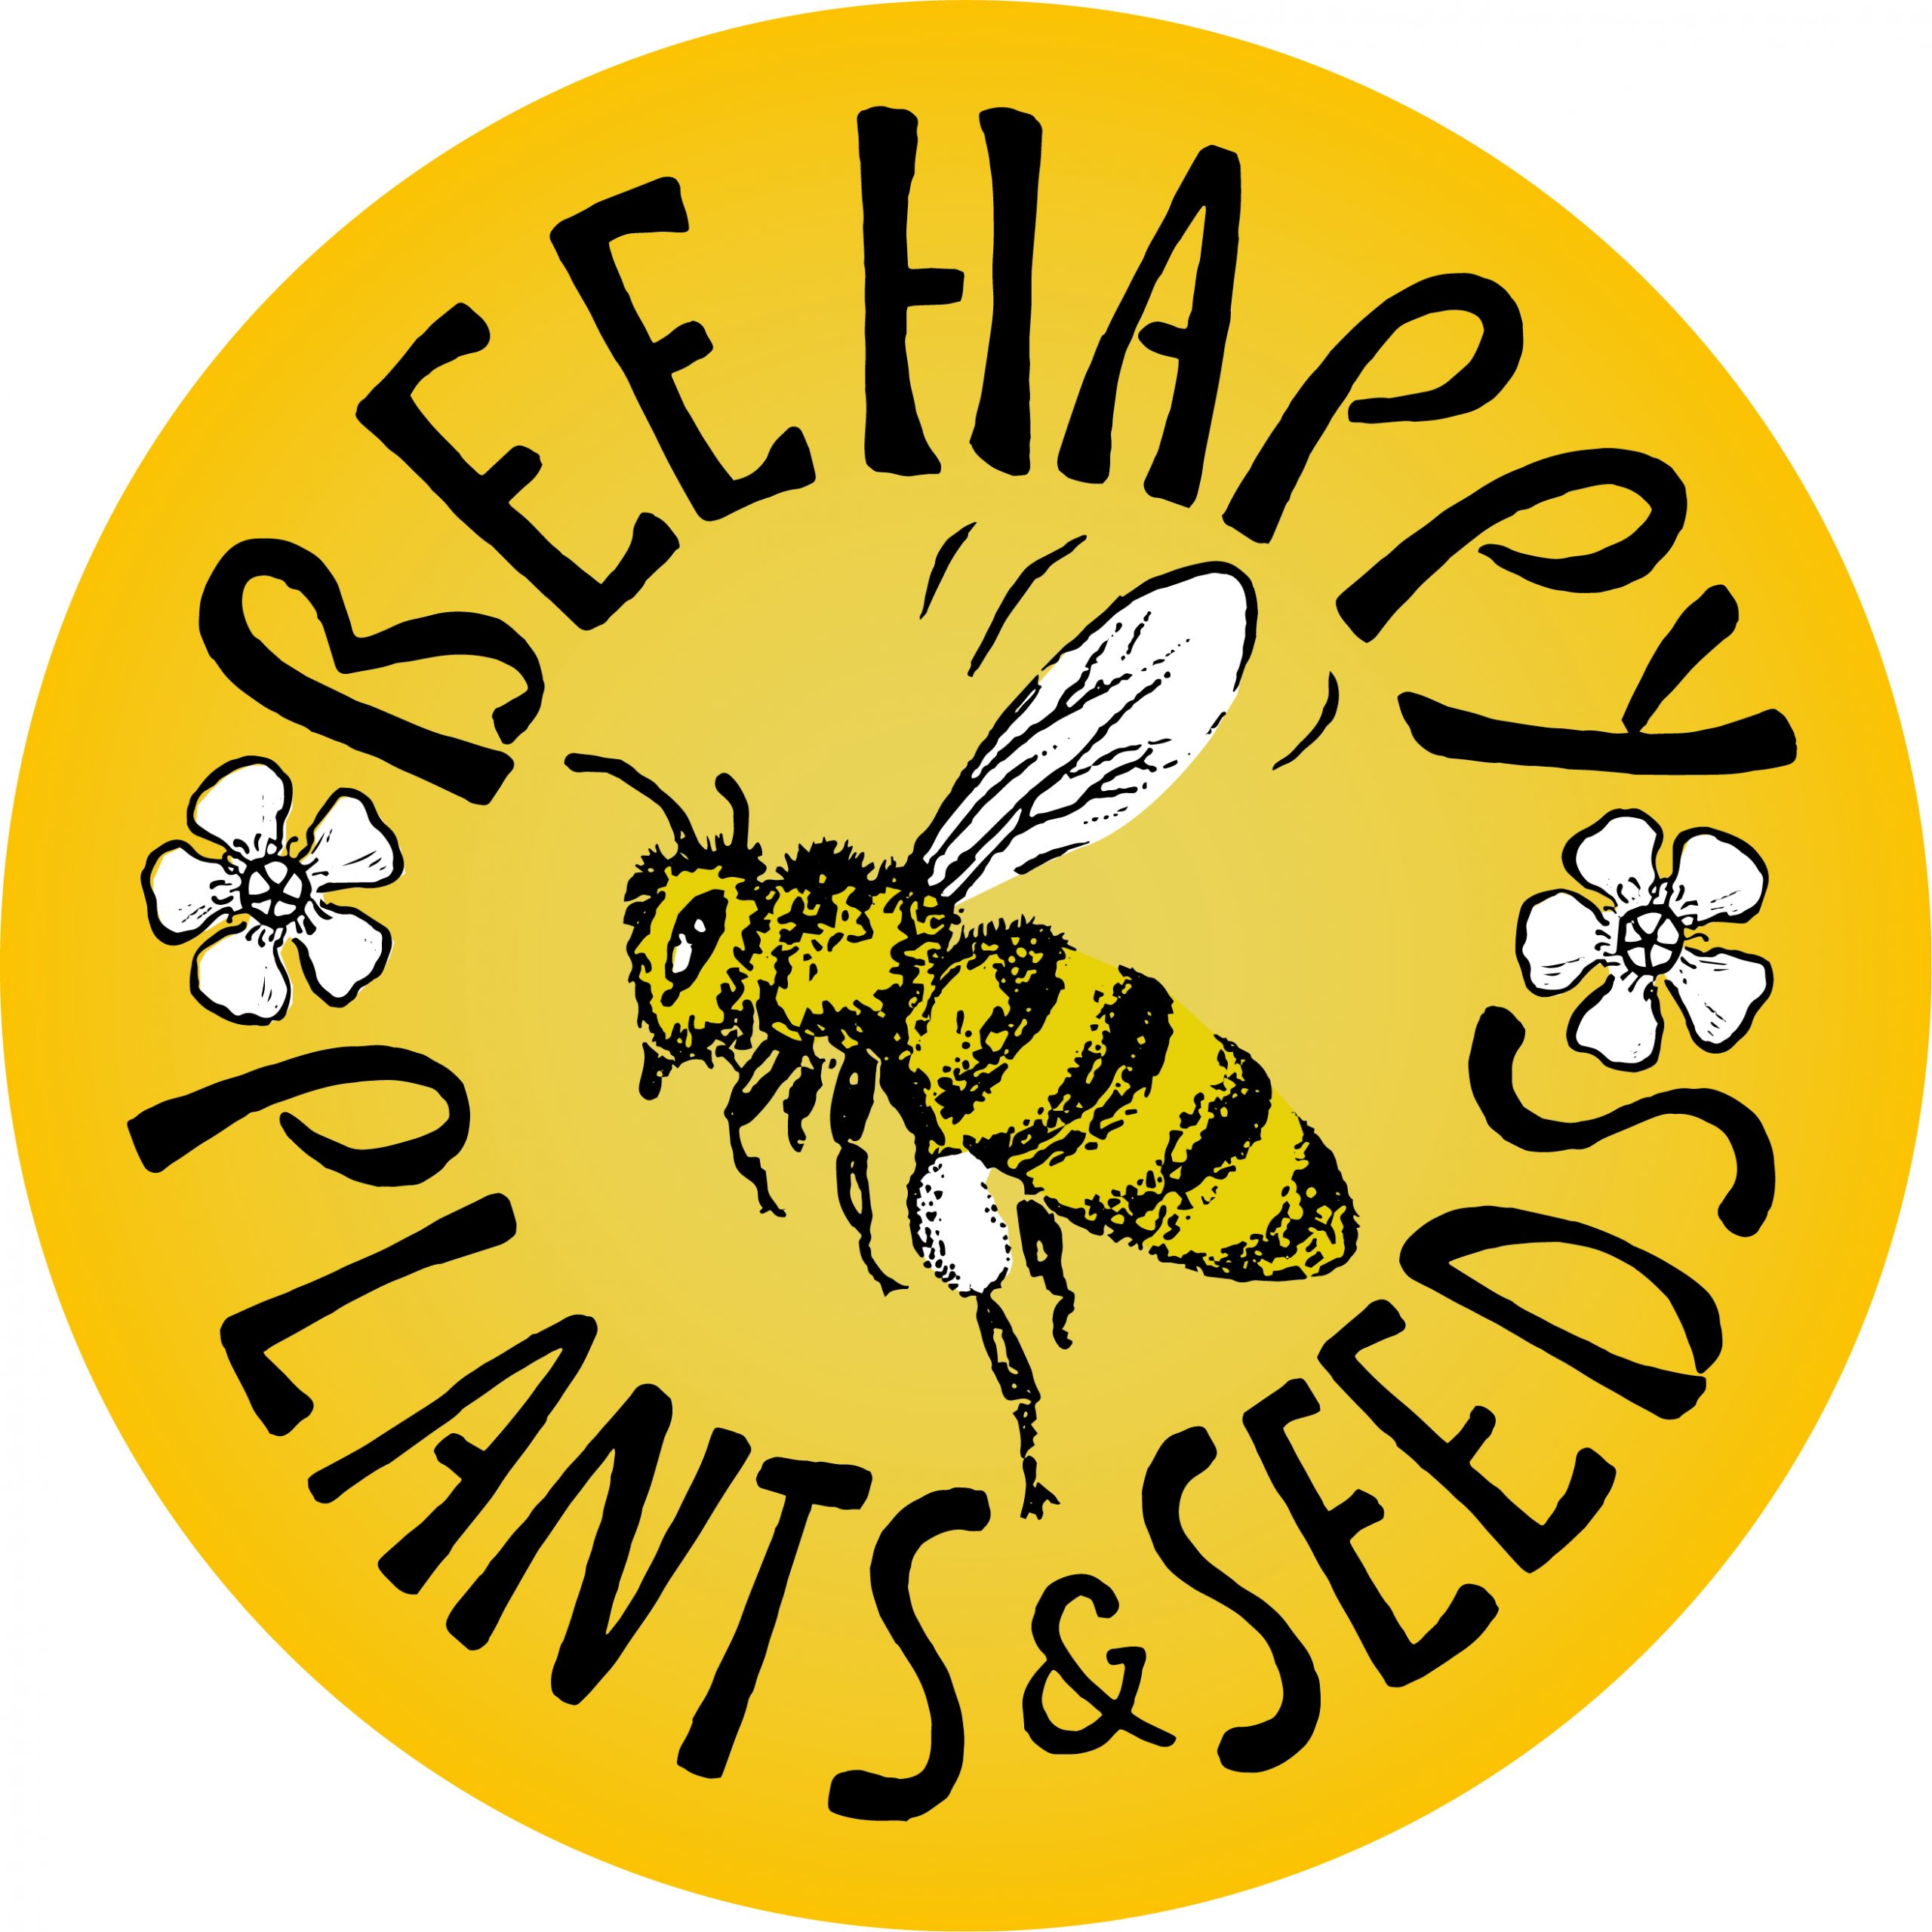 Bee Happy Plants & Seeds LOGO JPG - Sarah Holdsworth